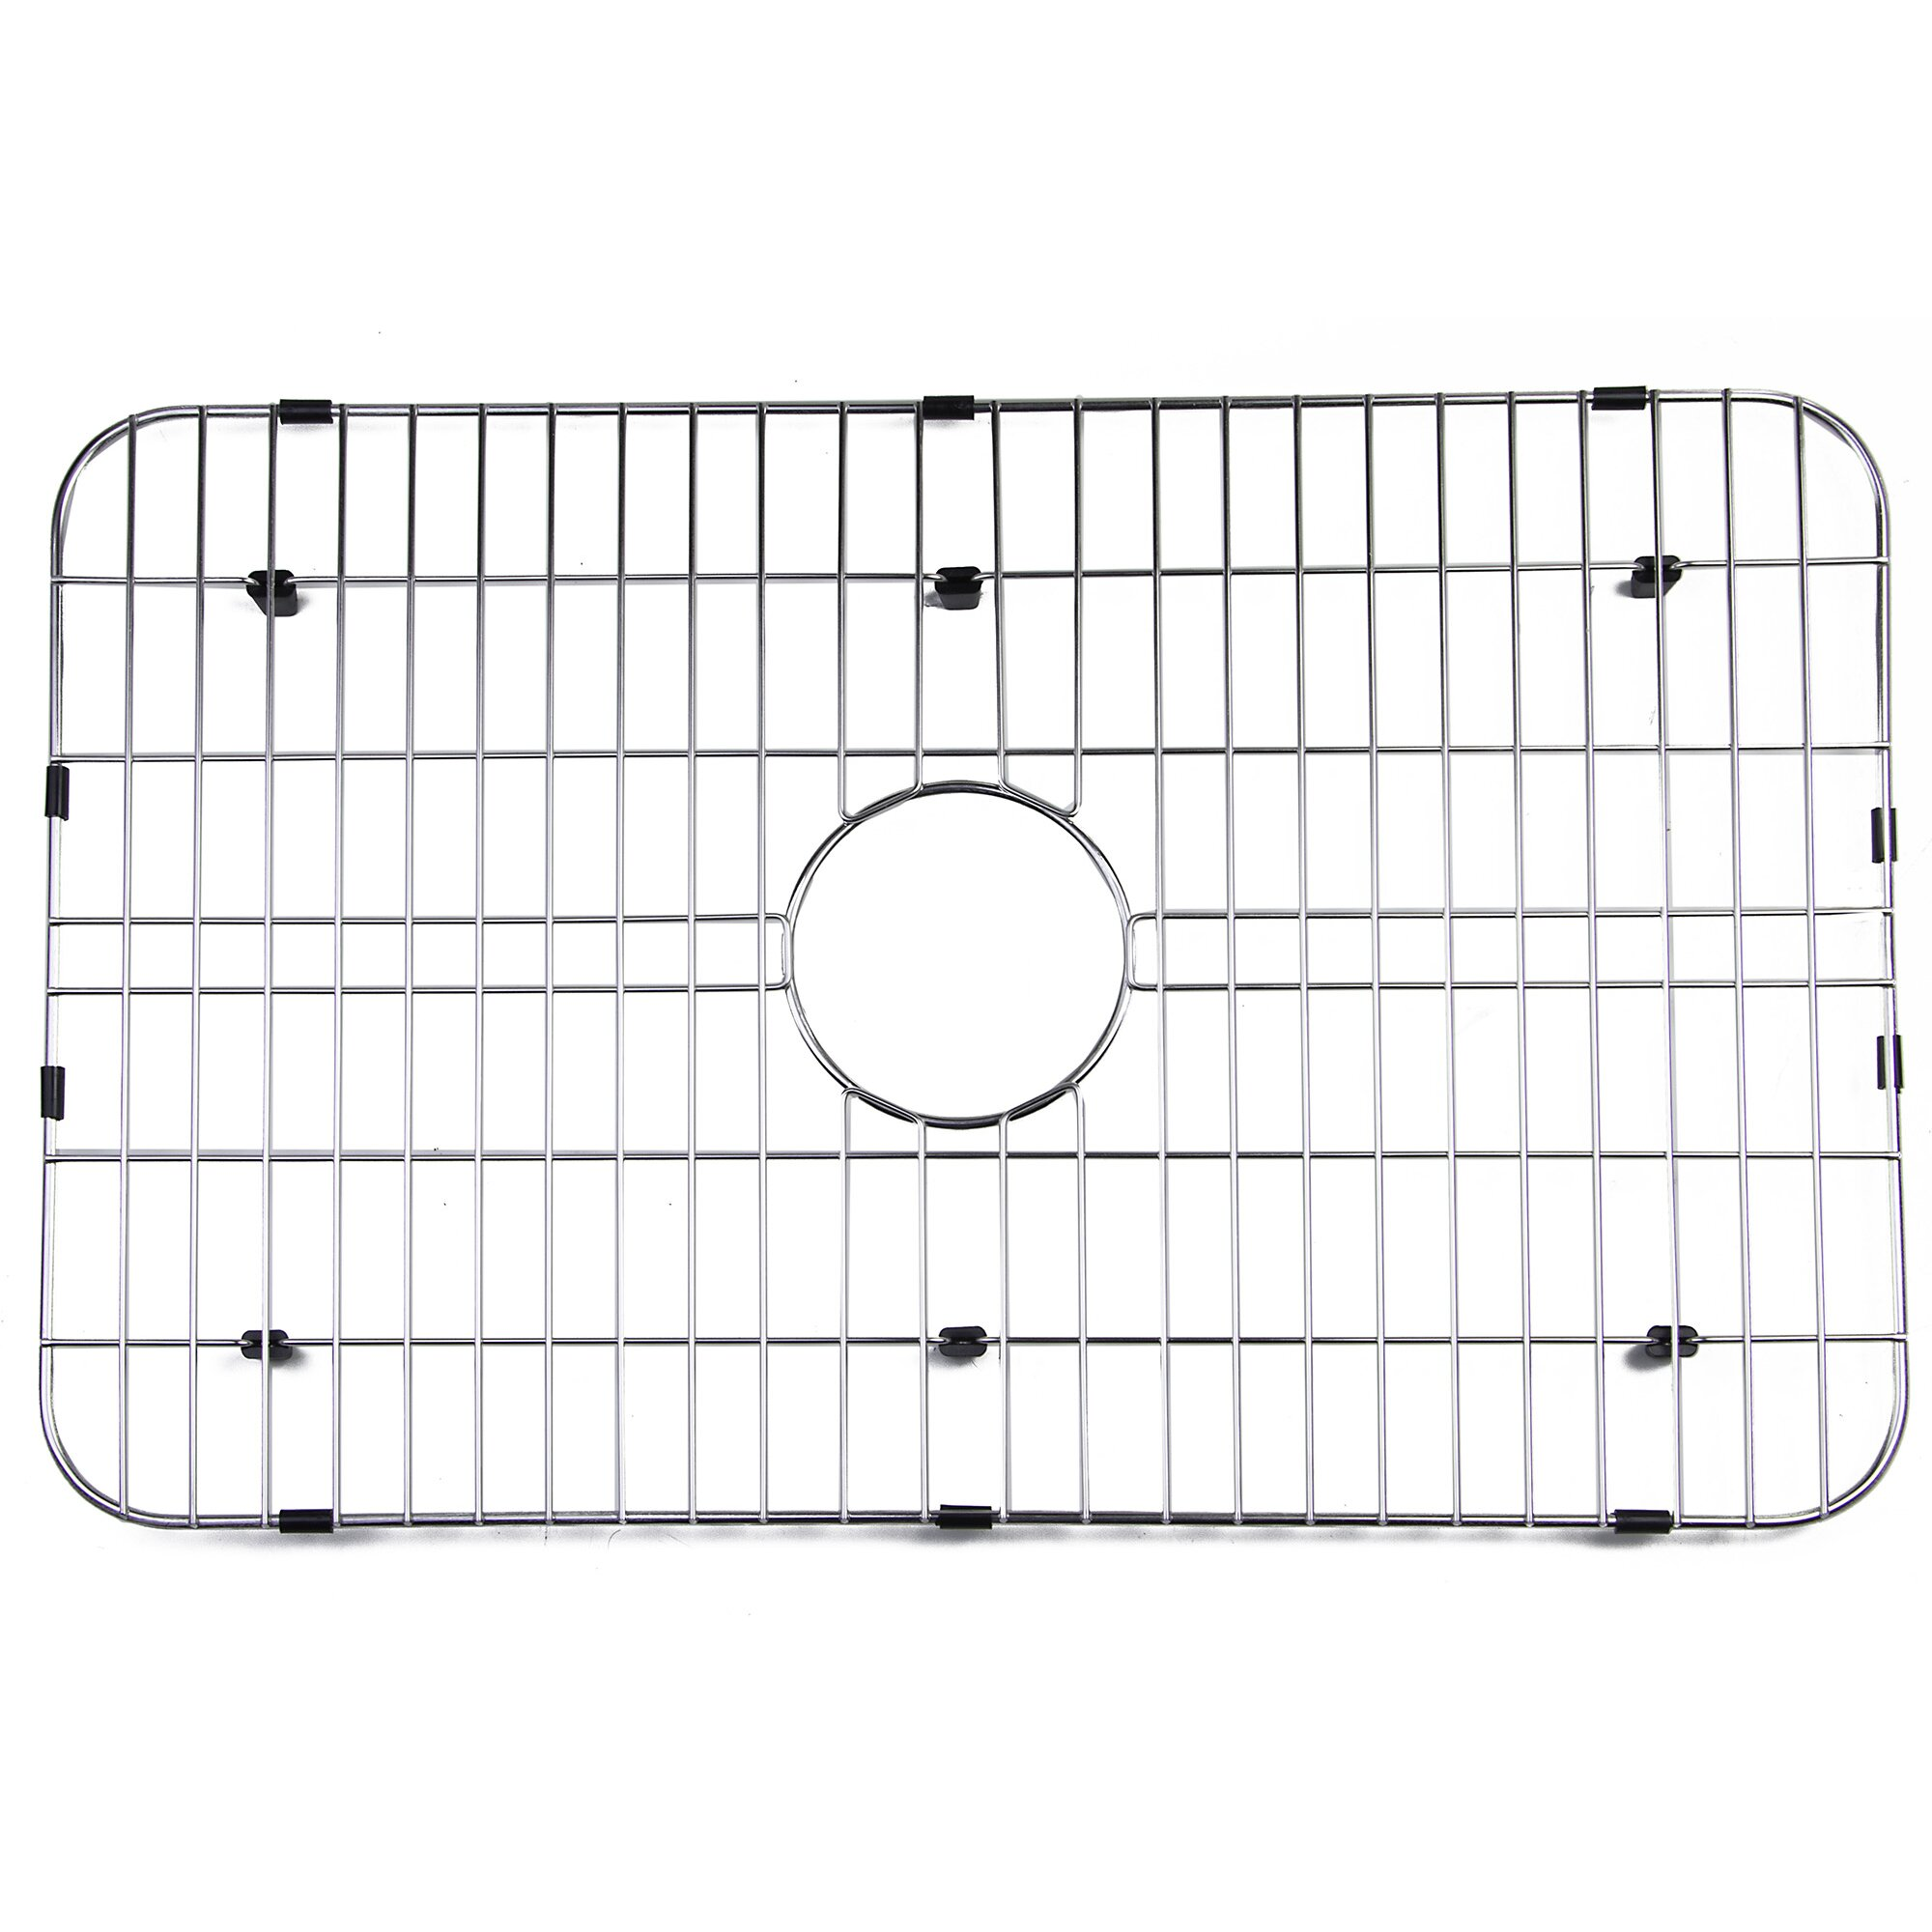 28 x 17 kitchen sink grid - Kitchen Sink Grids